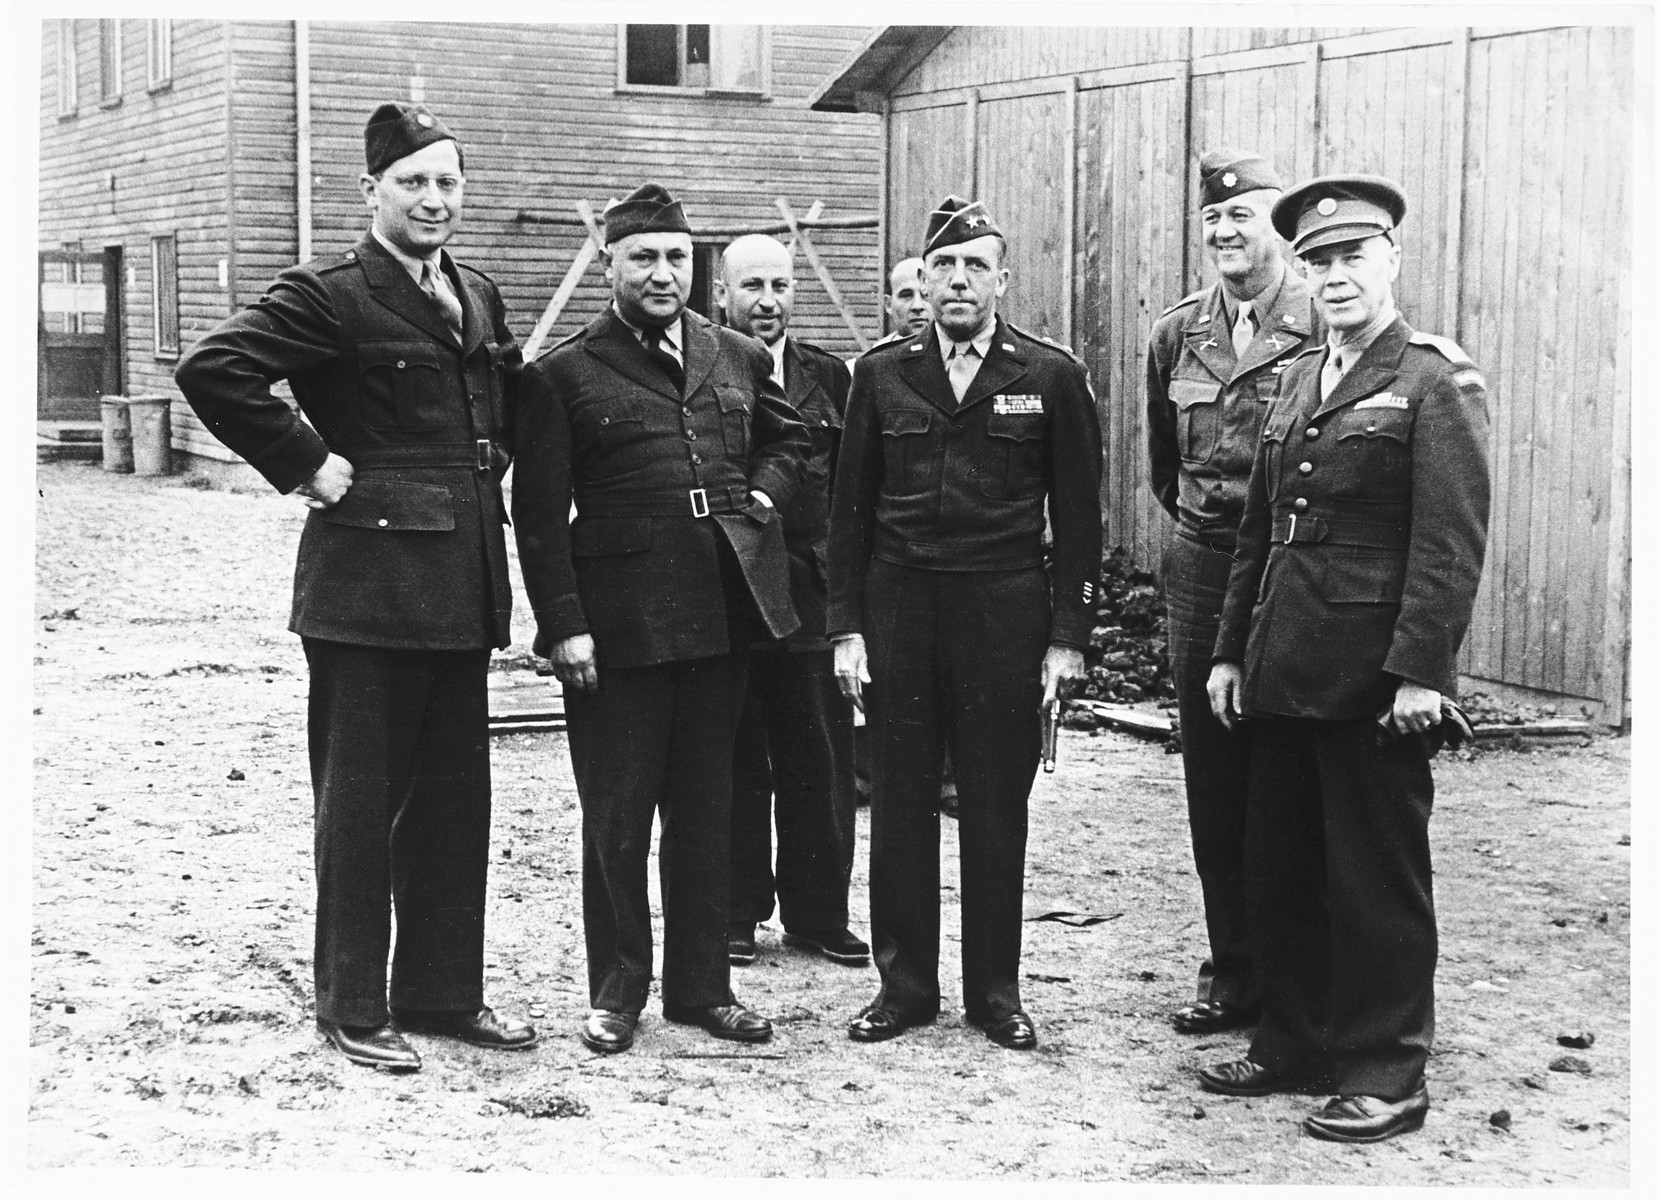 Group portrait of UNRRA personnel and American soldiers.  Among those pictured is Harold Fishbein, director of the Schlachtensee displaced persons camp, (second from the left).